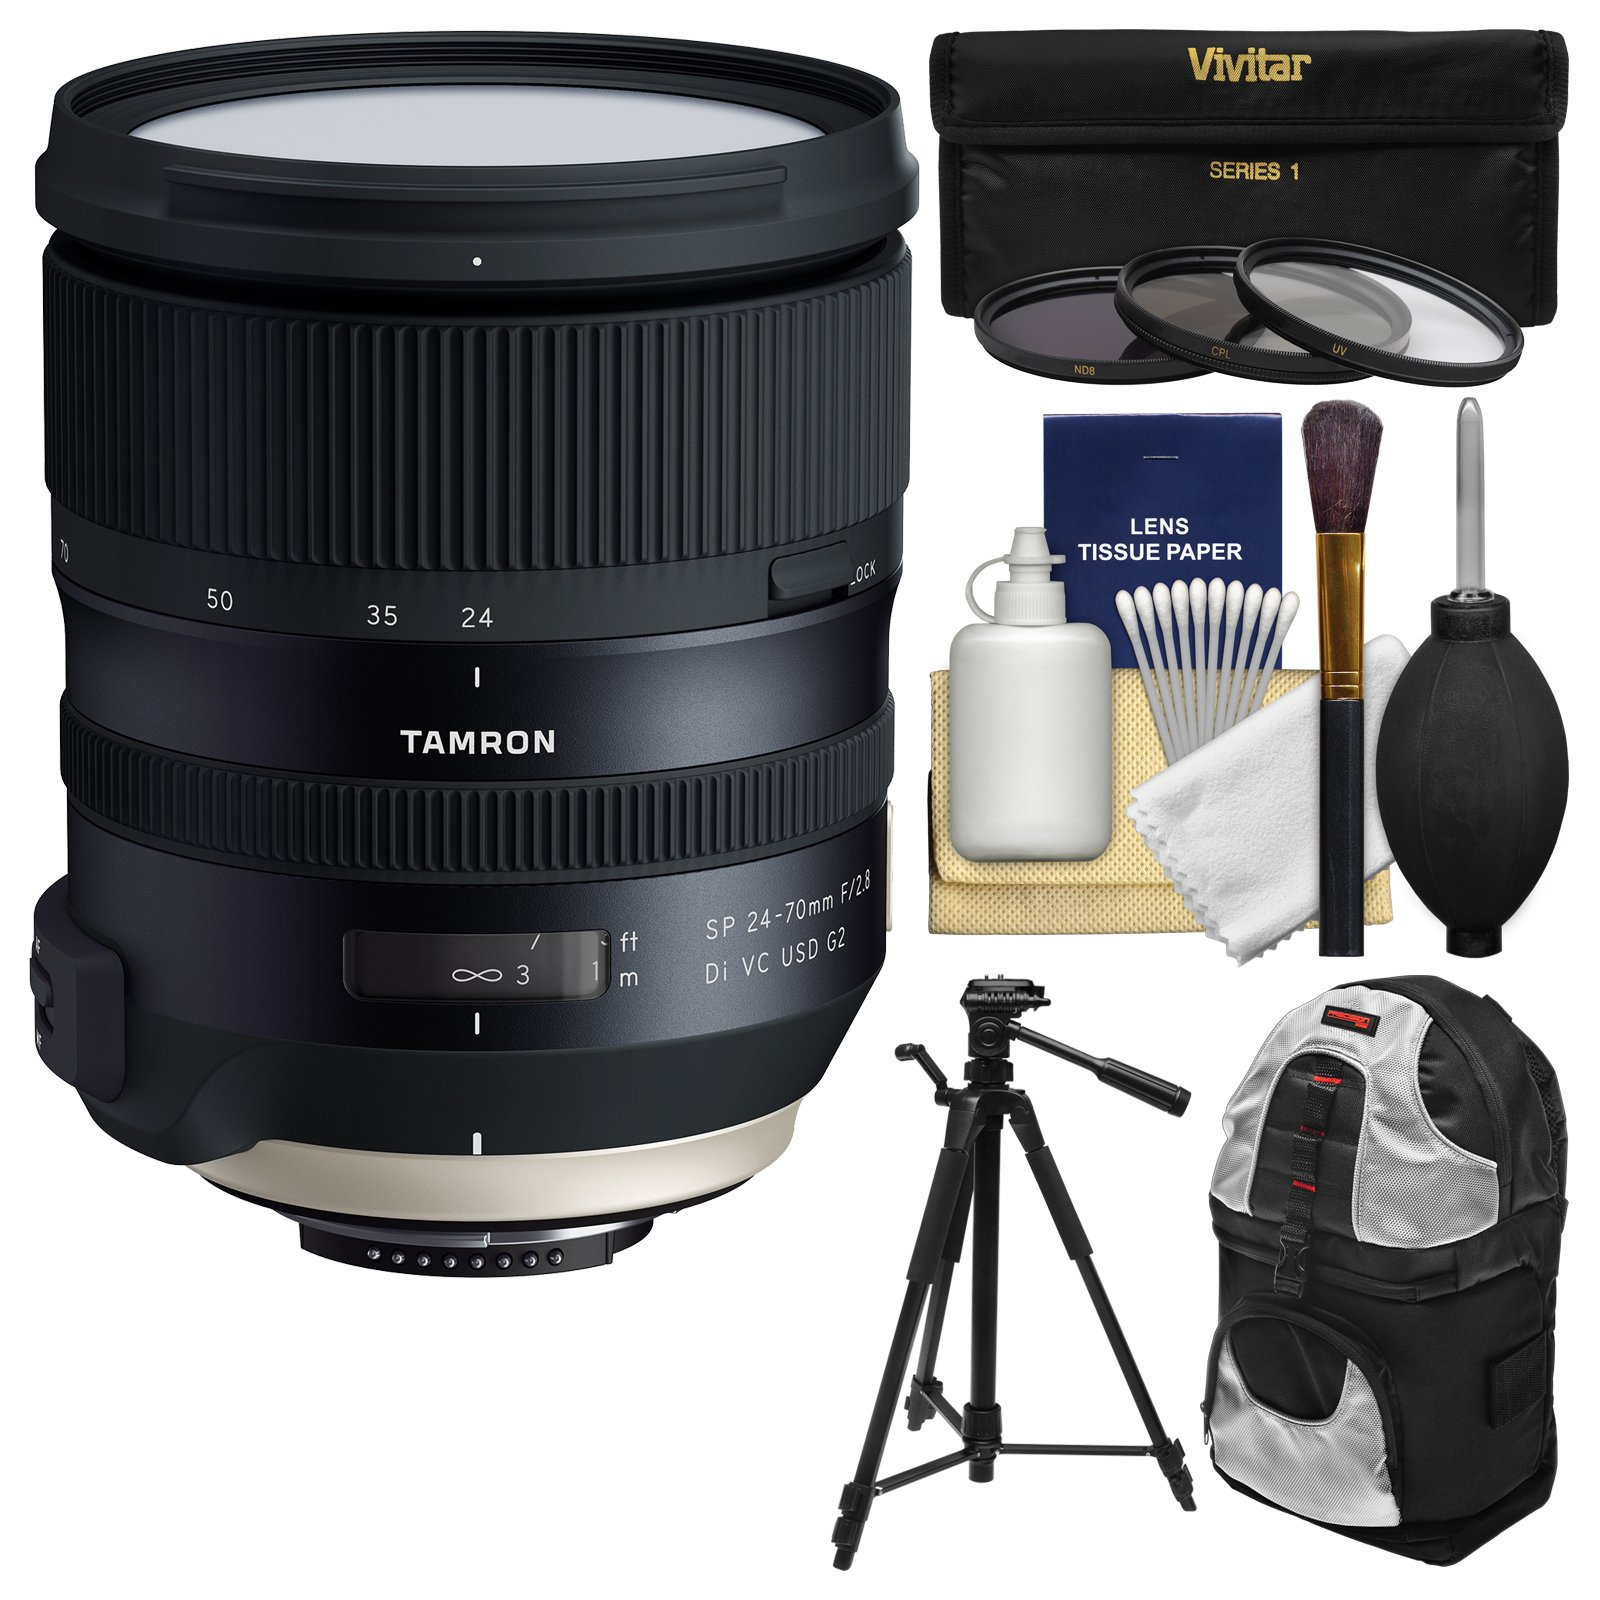 Tamron 24-70mm f/2.8 G2 Di VC USD SP Zoom Lens with 3 UV/CPL/ND8 Filters + Backpack + Tripod Kit for Nikon DSLR Cameras